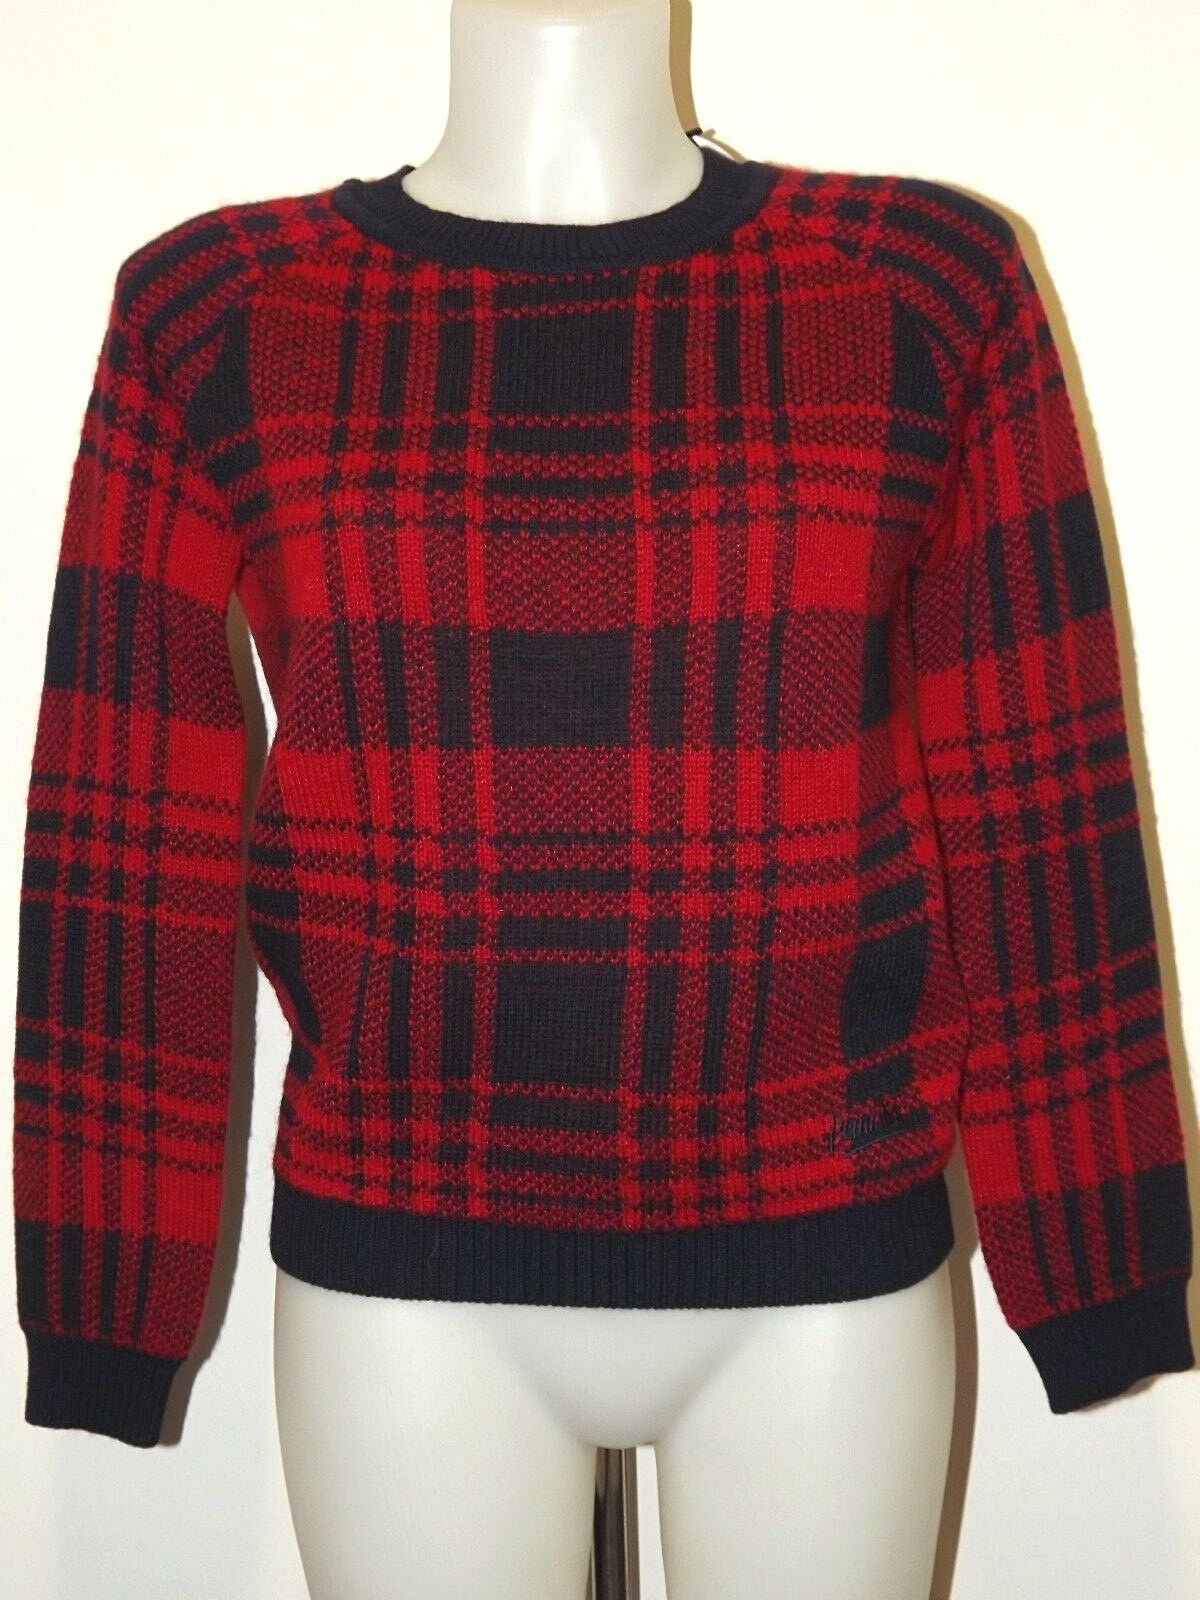 PENN-RICH BY WOOLRICH MAGLIONE DONNA CHECK S M L PULLOVER MISTO LANA